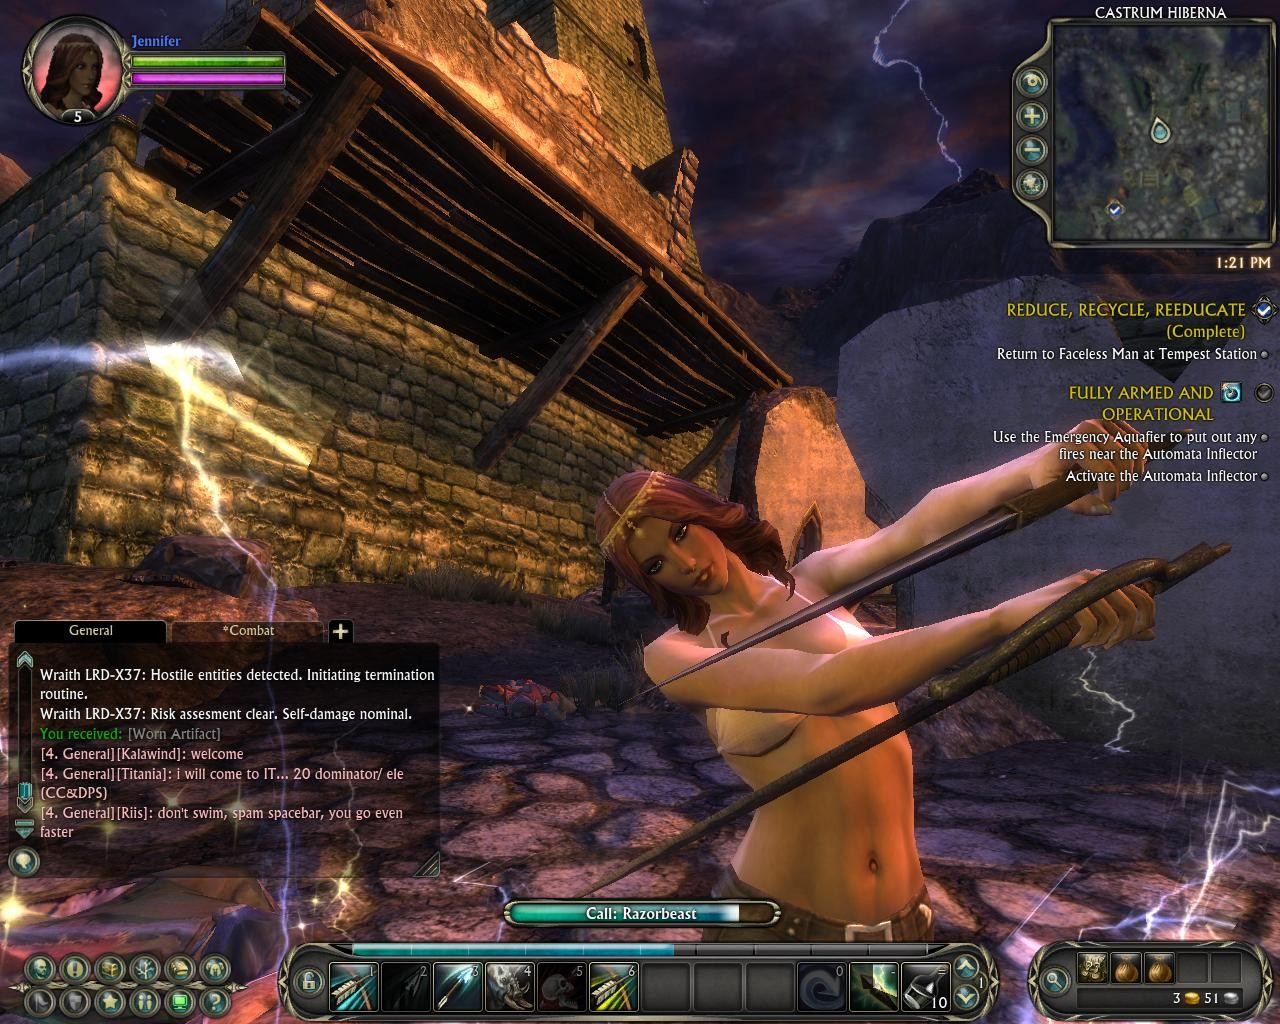 Bdsm mmorpg hentia video